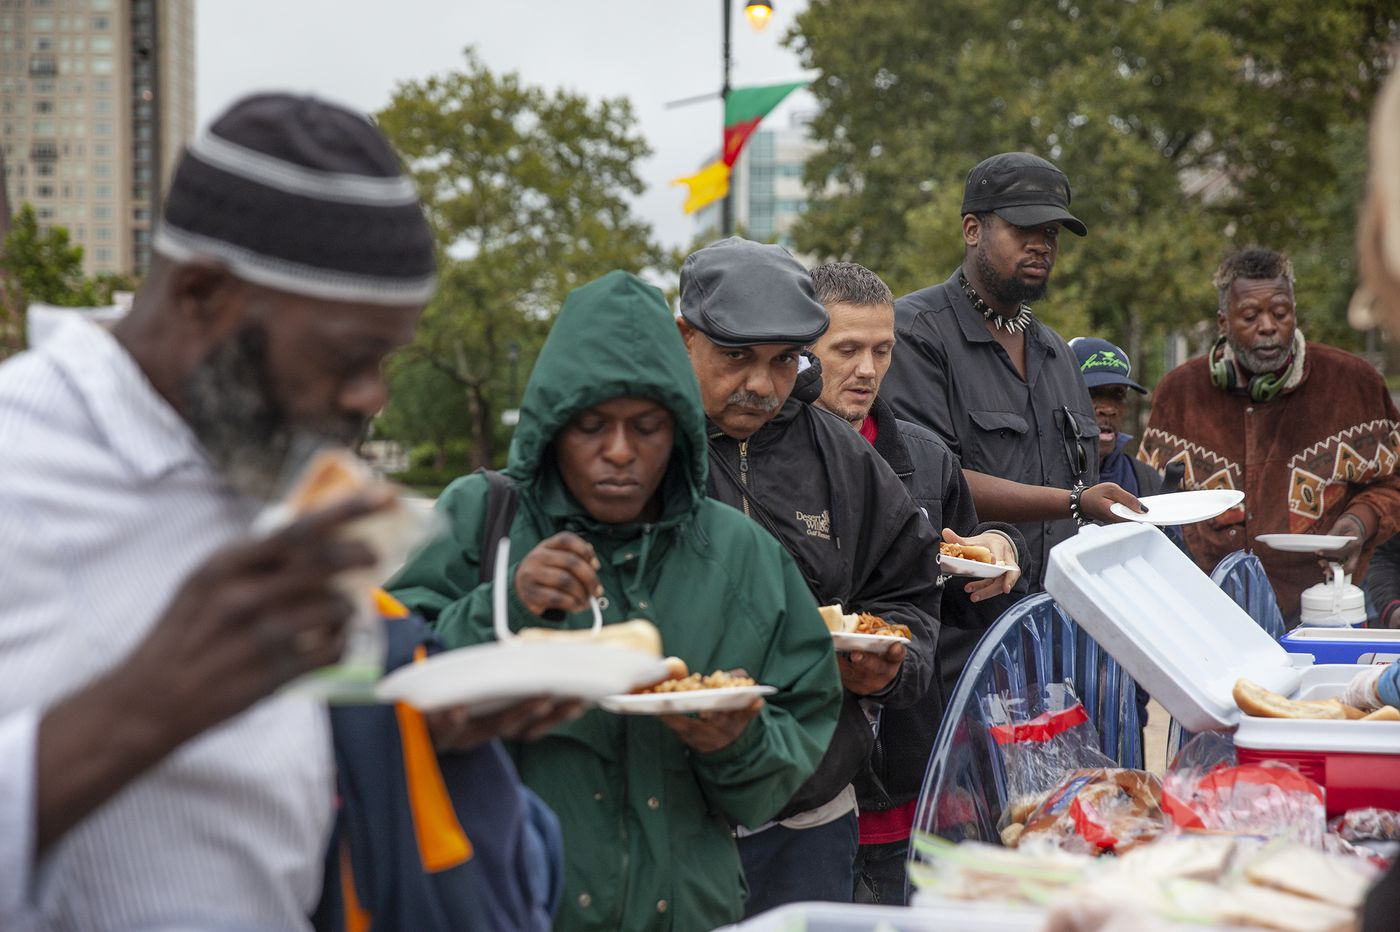 Mayor Jim Kenney: Solving Philly's poverty issues takes consistent, relentless effort | Opinion